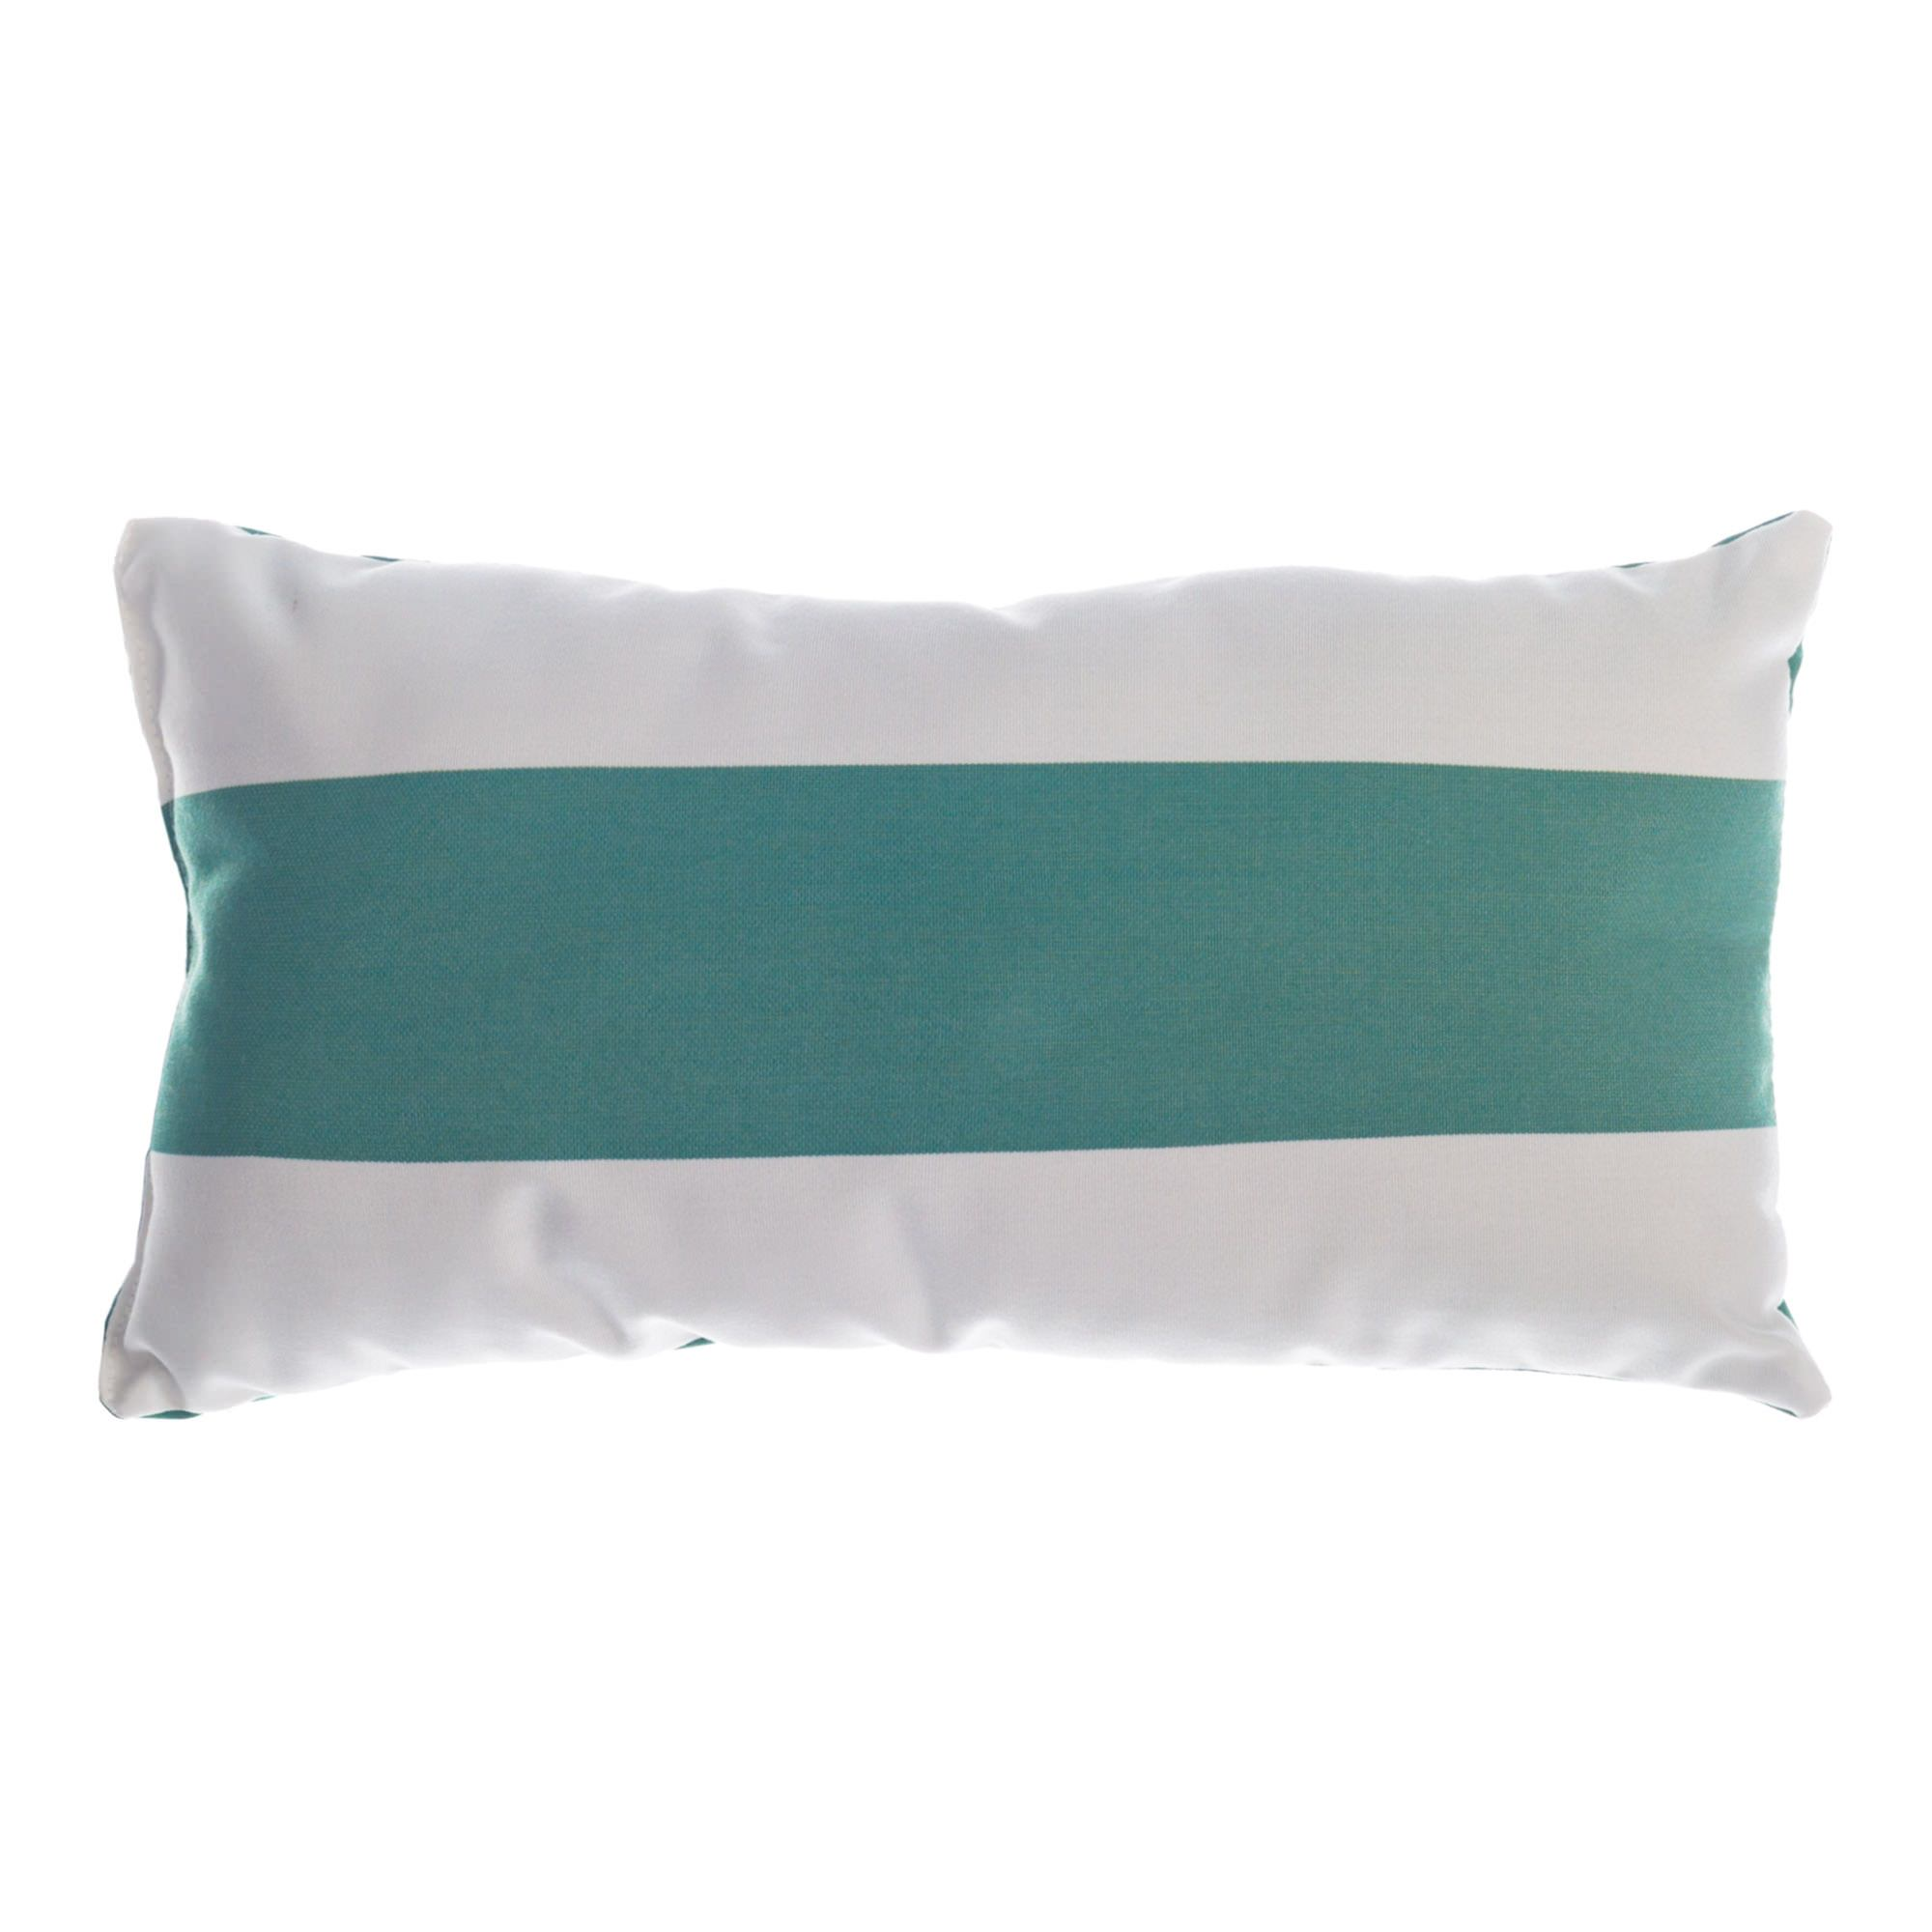 Sunbrella Throw Pillows Clearance : Shop Resort Stripe Jade Sunbrella Outdoor Throw Pillow - Essentials by DFO; Pillows; Outdoors ...